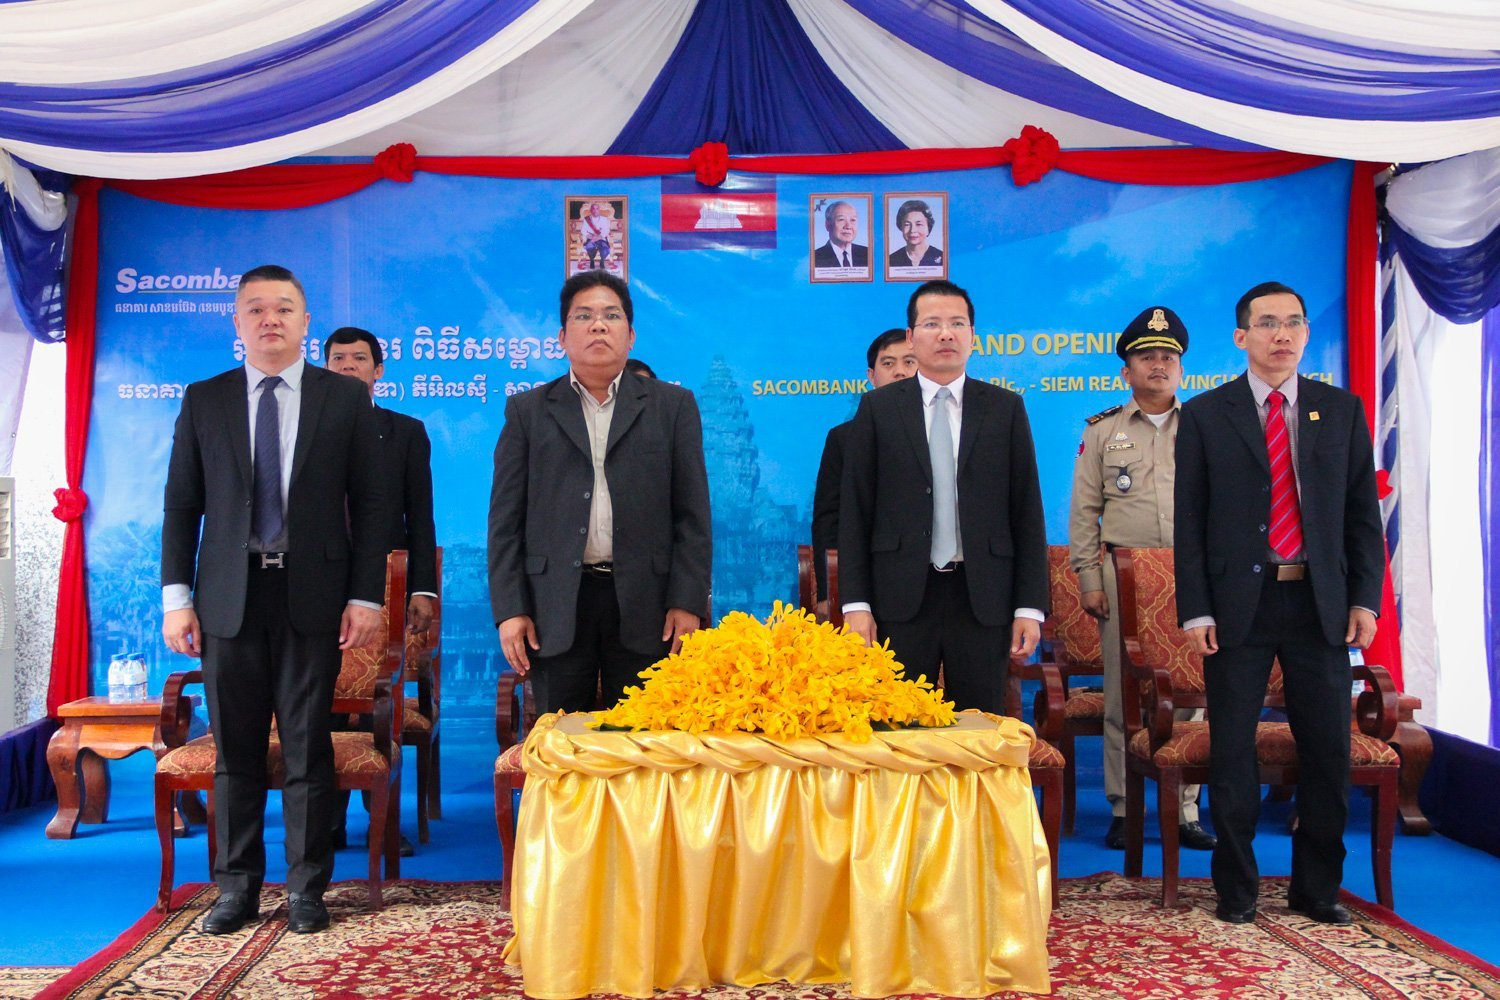 Grand Opening its 9th business location in Cambodia- Siem Reap Branch